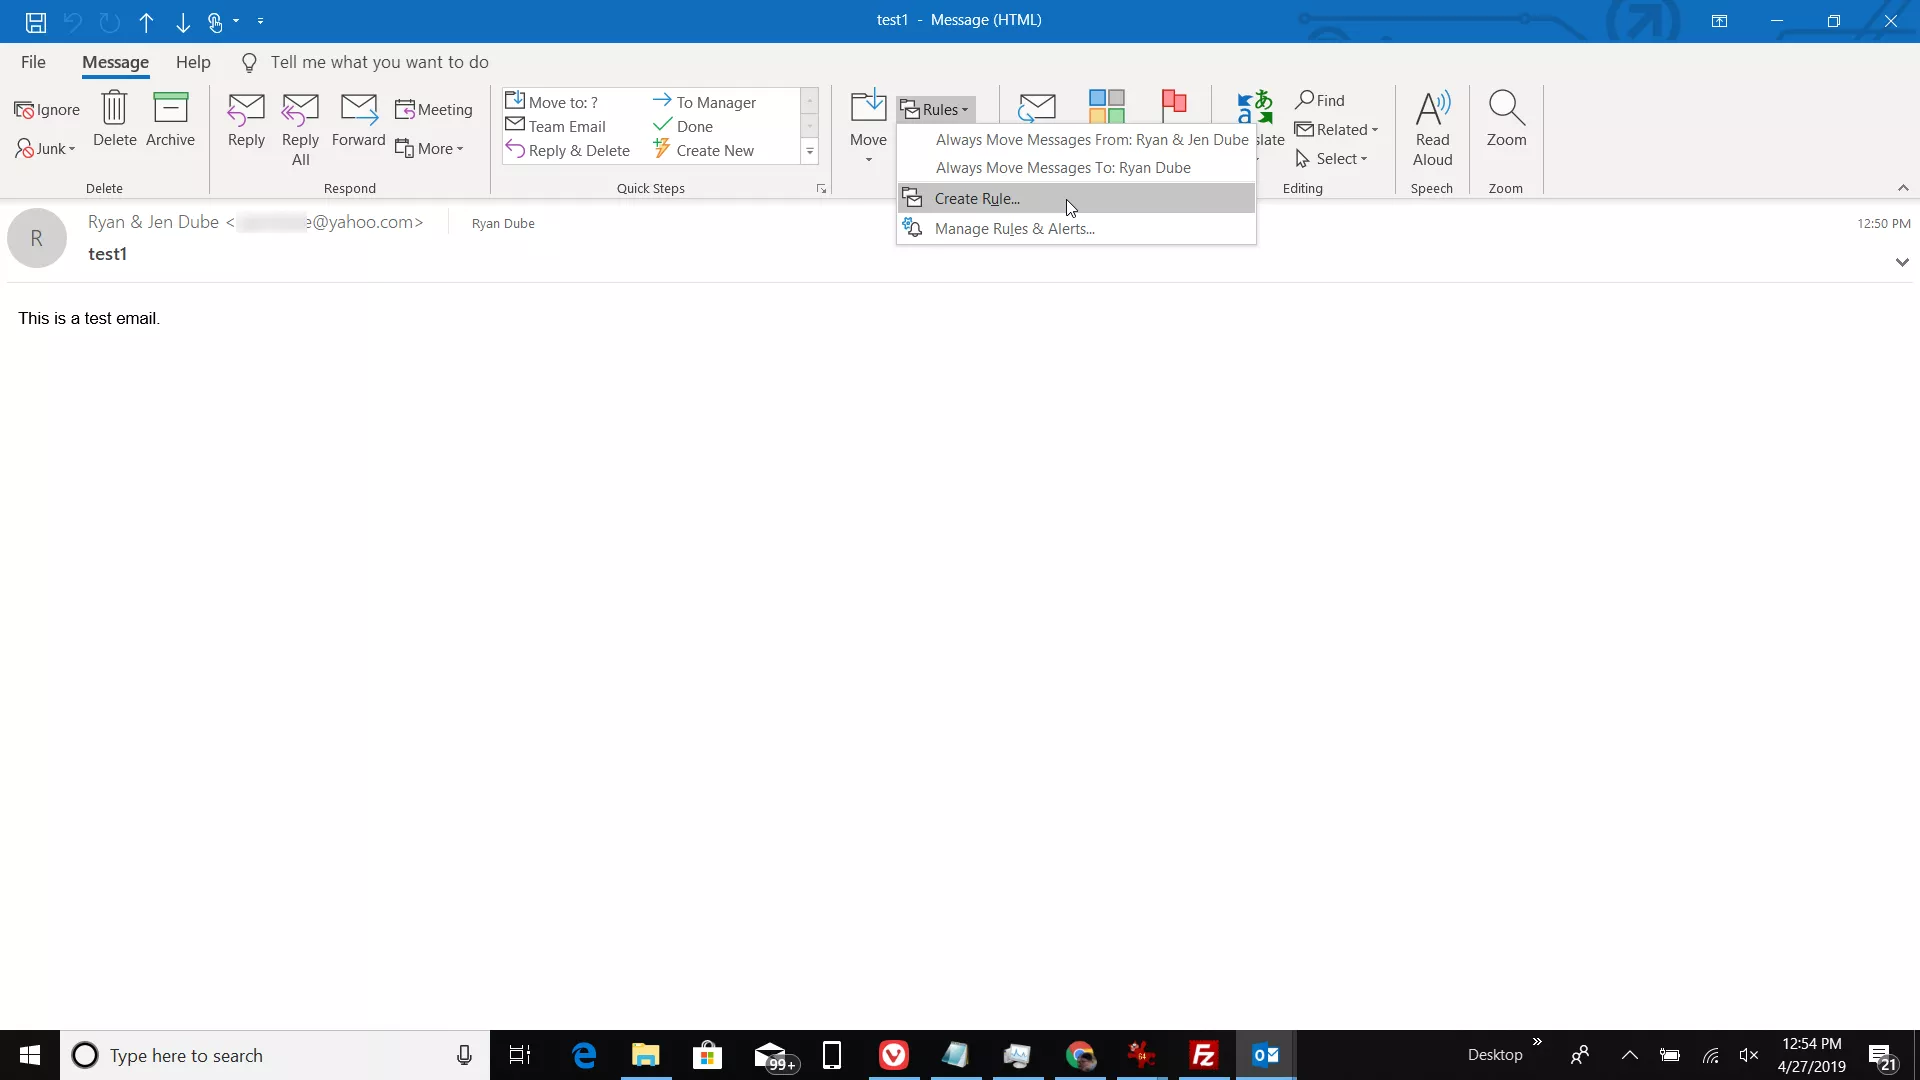 Screenshot of creating a rule in an email message in Outlook